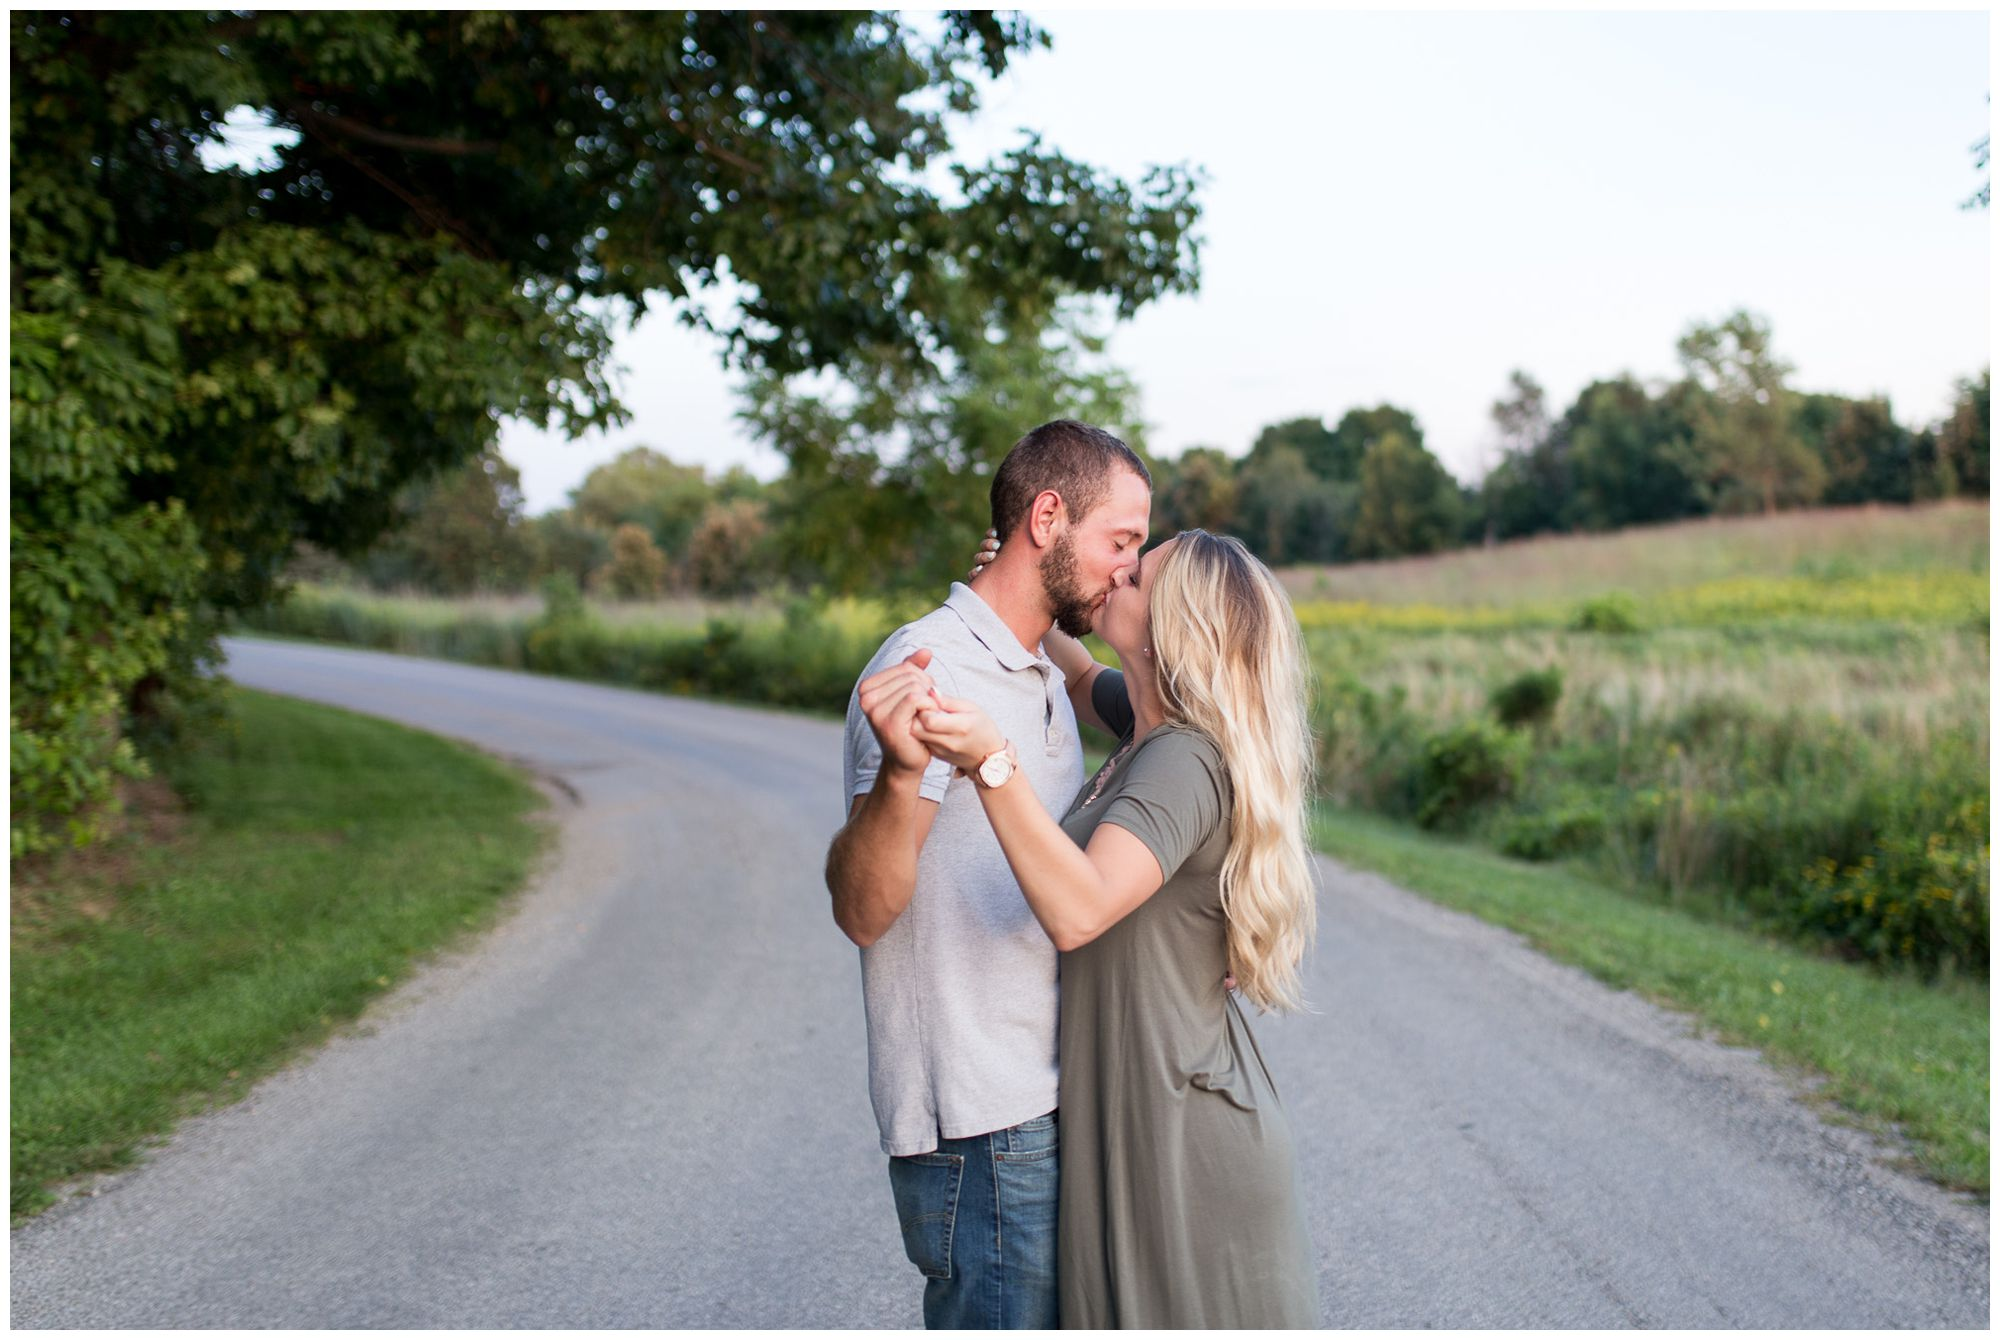 bride and groom kiss in road holding hands during Fort Wayne engagement session at Metea County Park